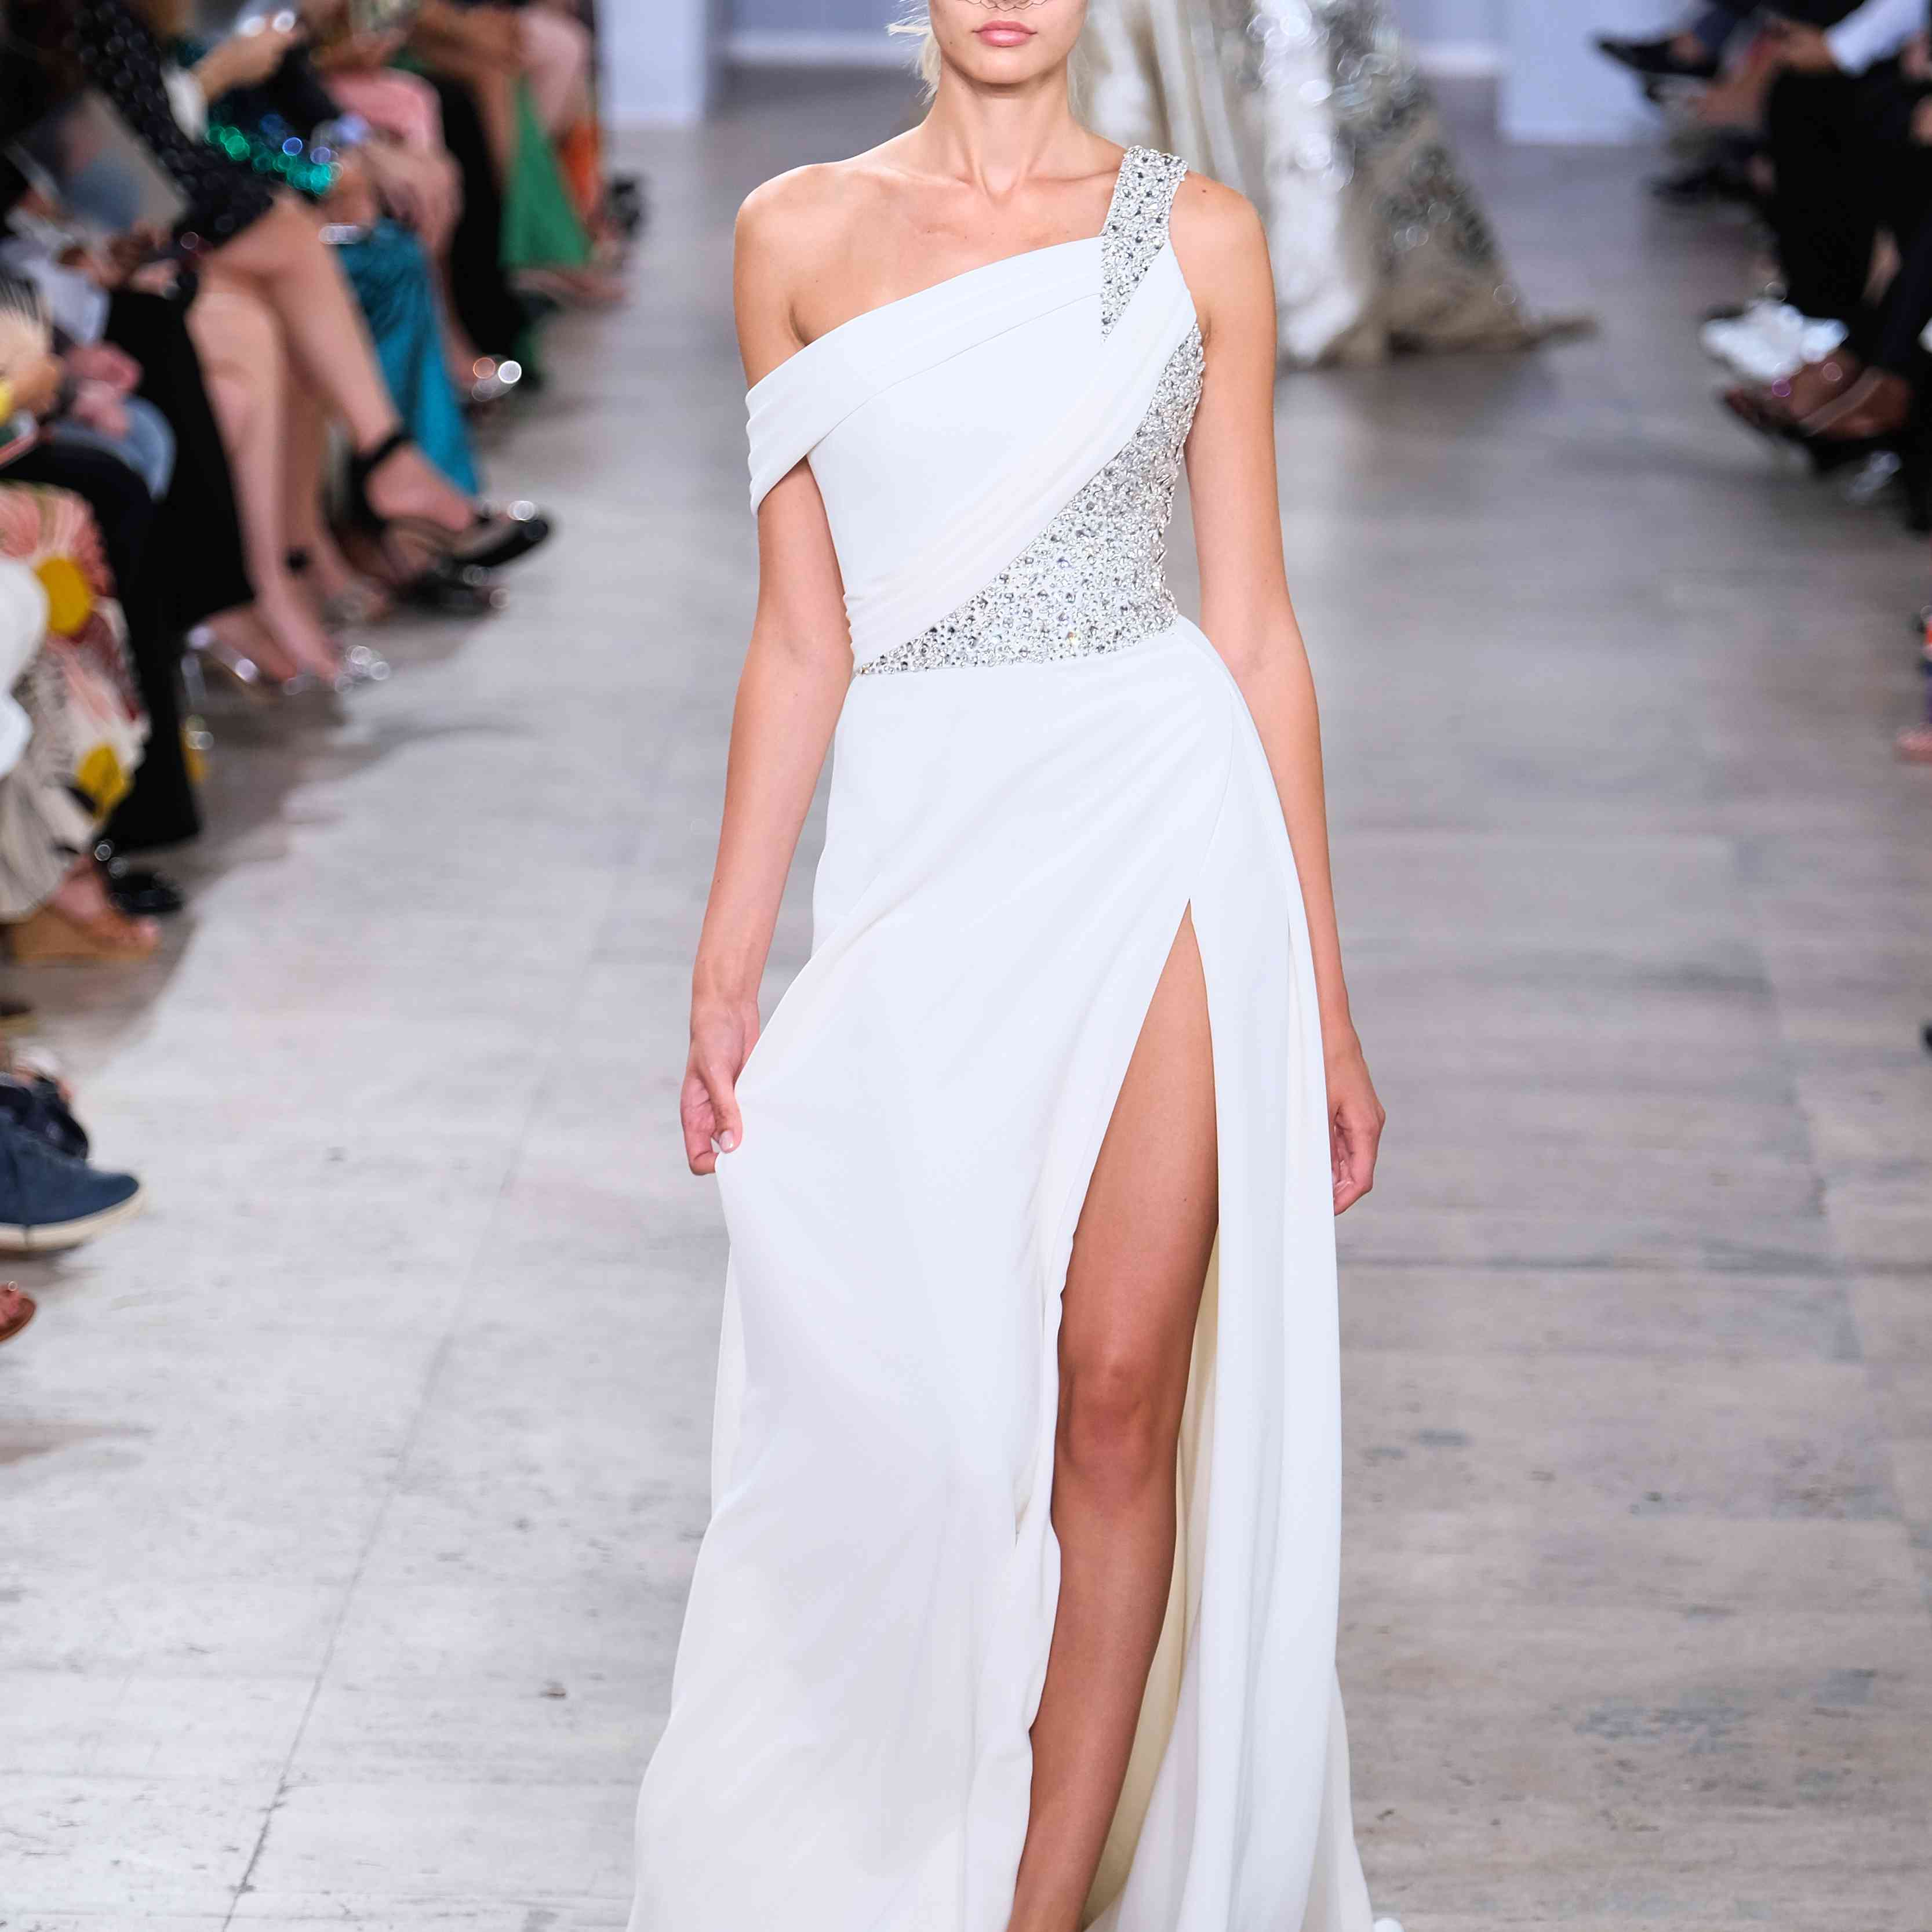 Model in one-shouldered white gown with high slit